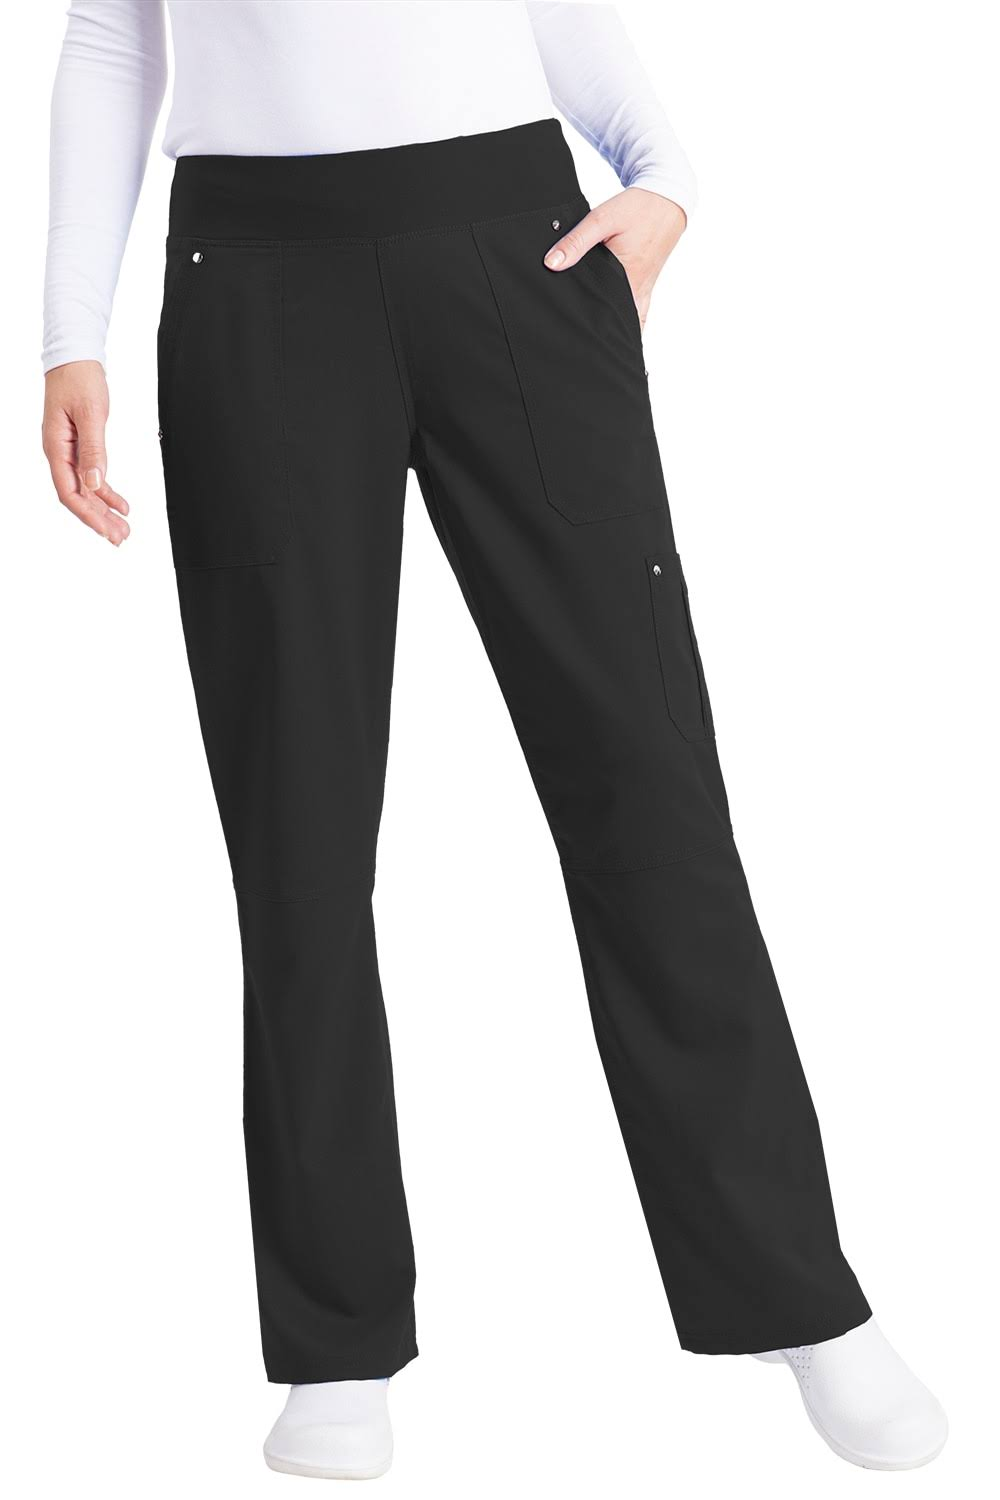 Healing Hands Women's 9133 Tori Pant - Black, XX-Large